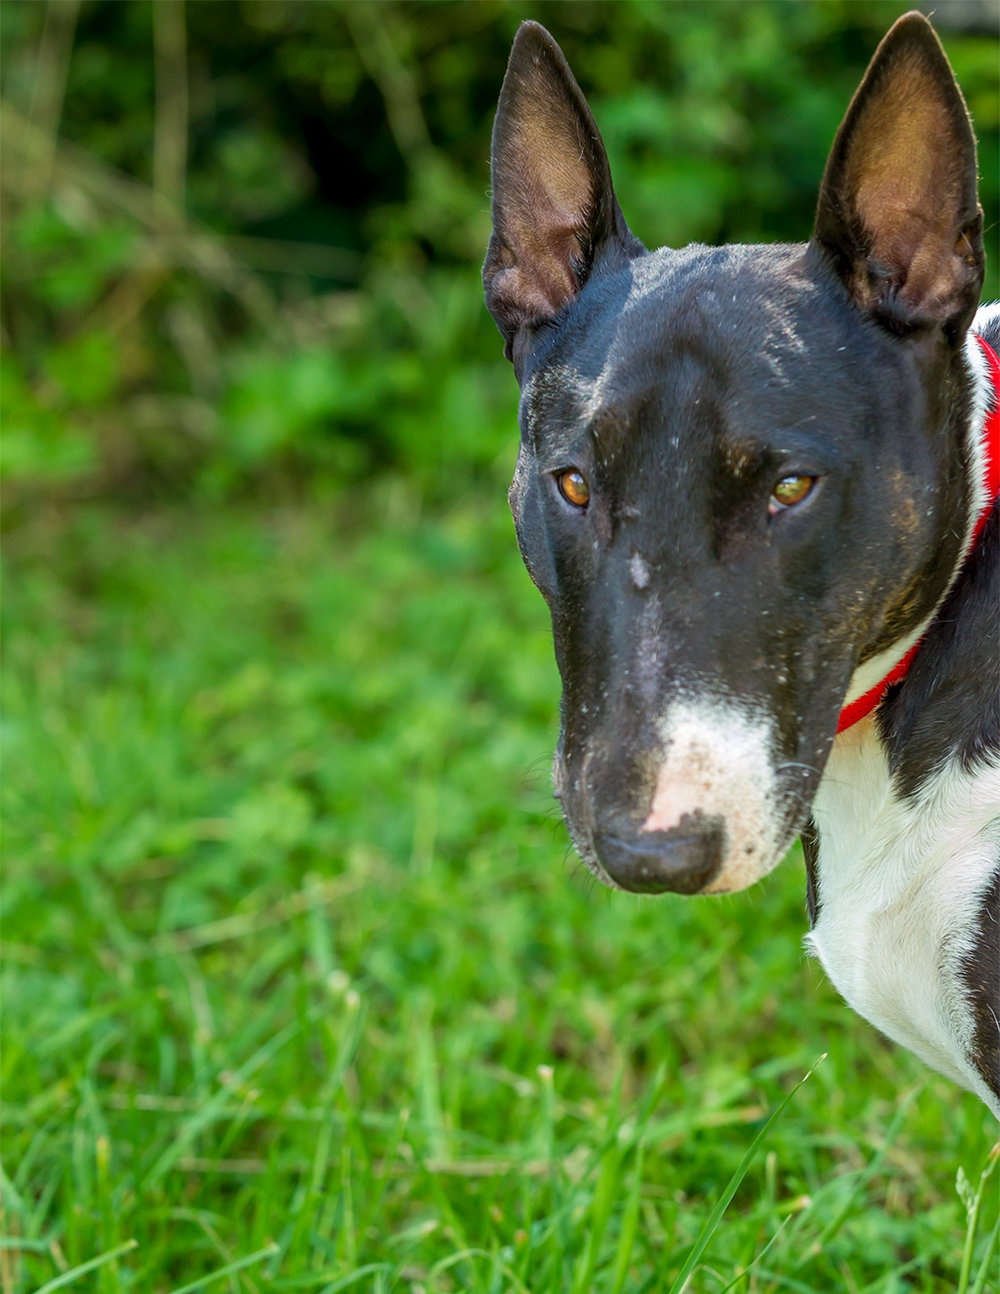 A rescued English Bull Terrier whose history was horrible, her new life is so much better!